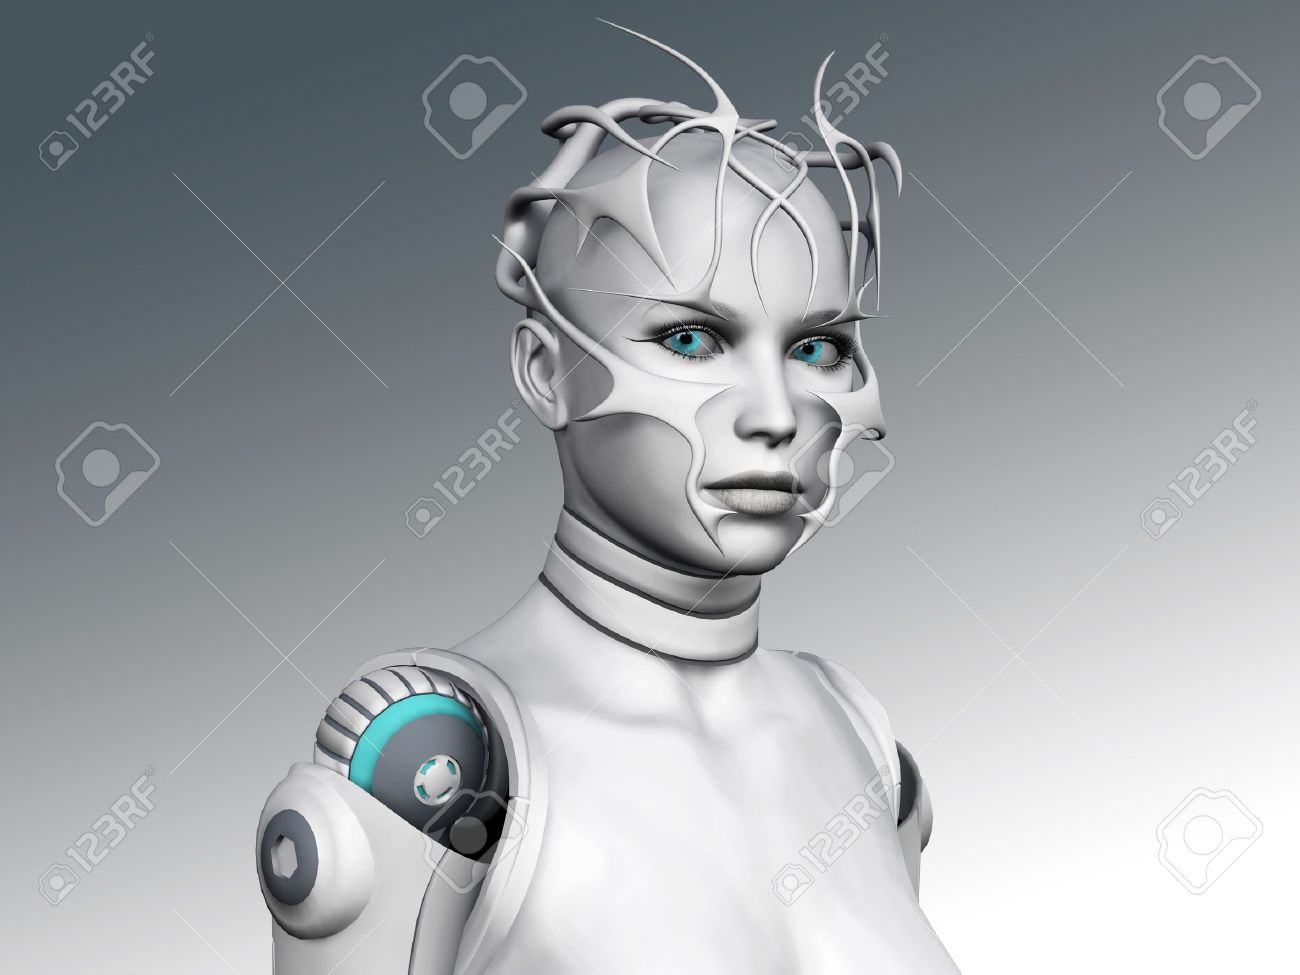 Portrait of a futuristic looking android woman. Stock Photo - 12020227